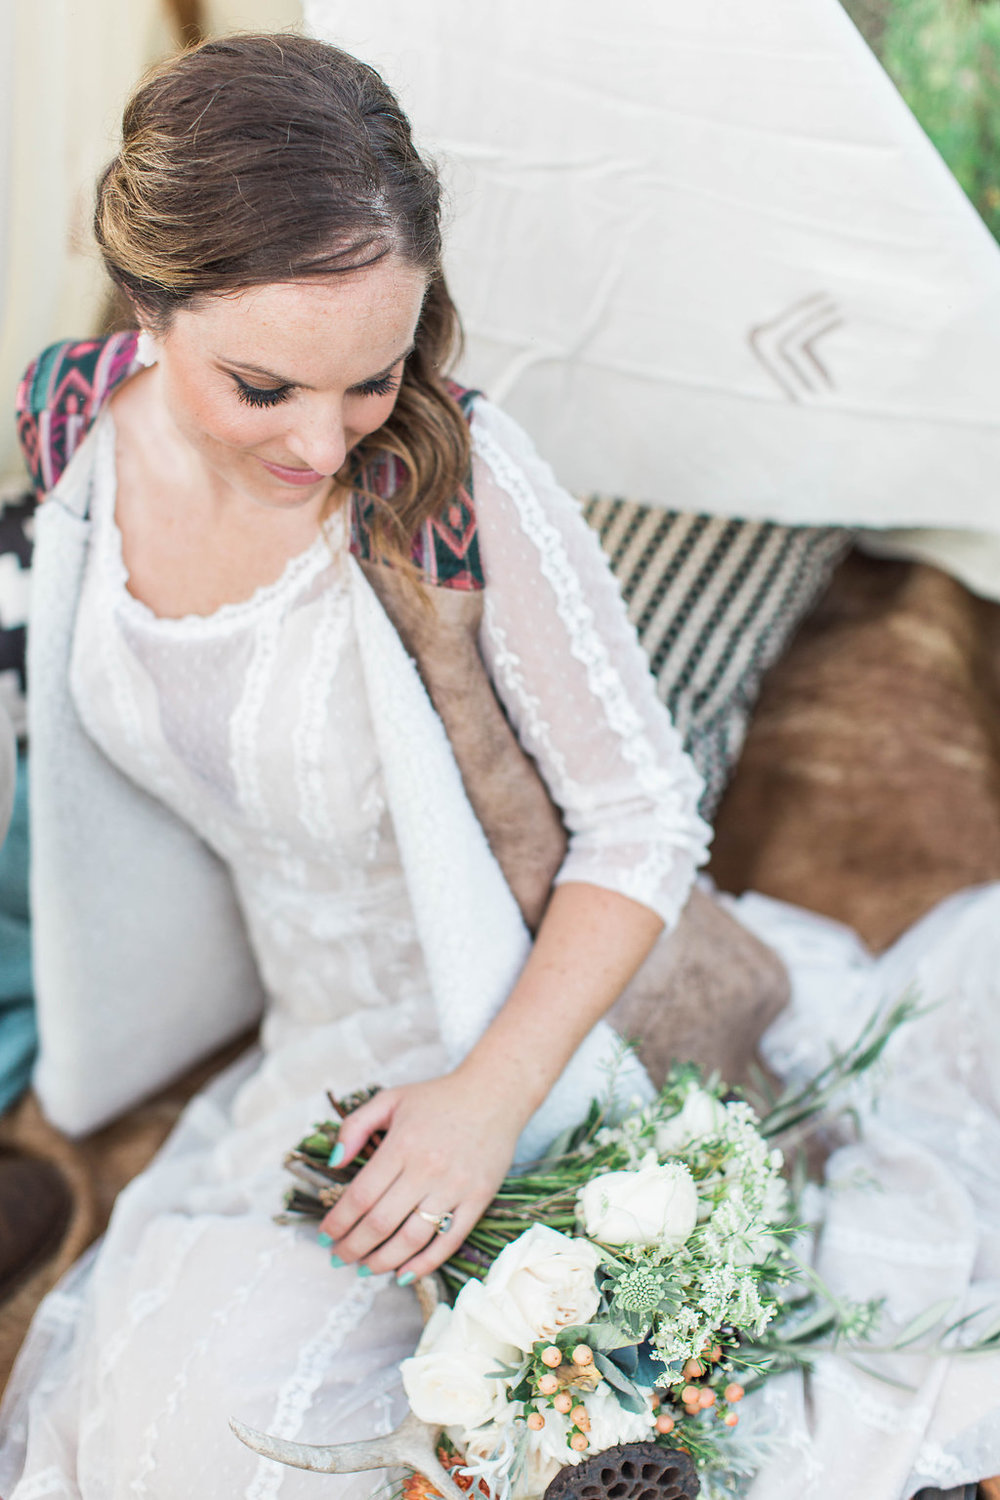 apt-b-photography-ivory-and-beau-bridal-boutique-anna-campbell-isobelle-australian-wedding-the-collins-quarter-savannah-wedding-savannah-weddings-savannah-florist-savannah-bridal-savannah-event-designer-savannah-wedding-dresses-outback-wedding-33.jpg